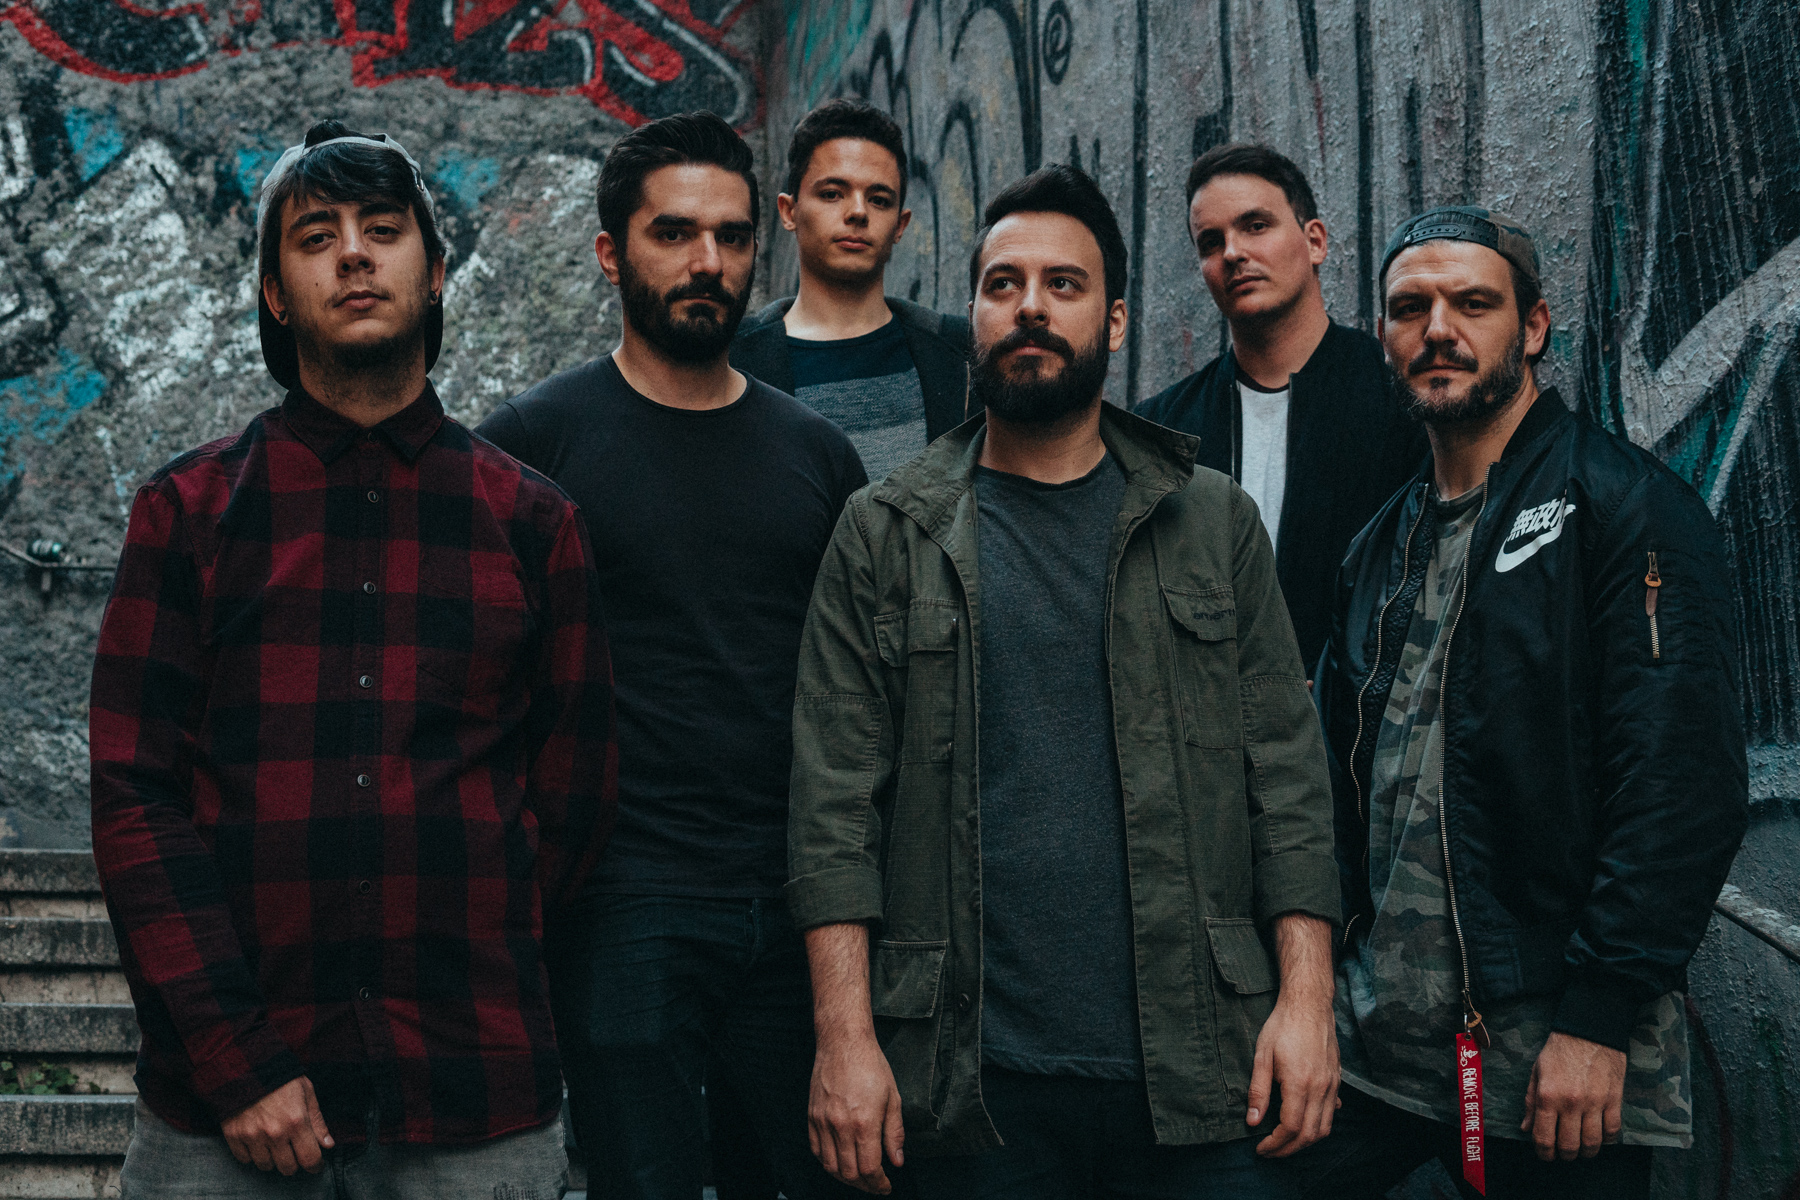 The promo photo we took at some cool stairs.